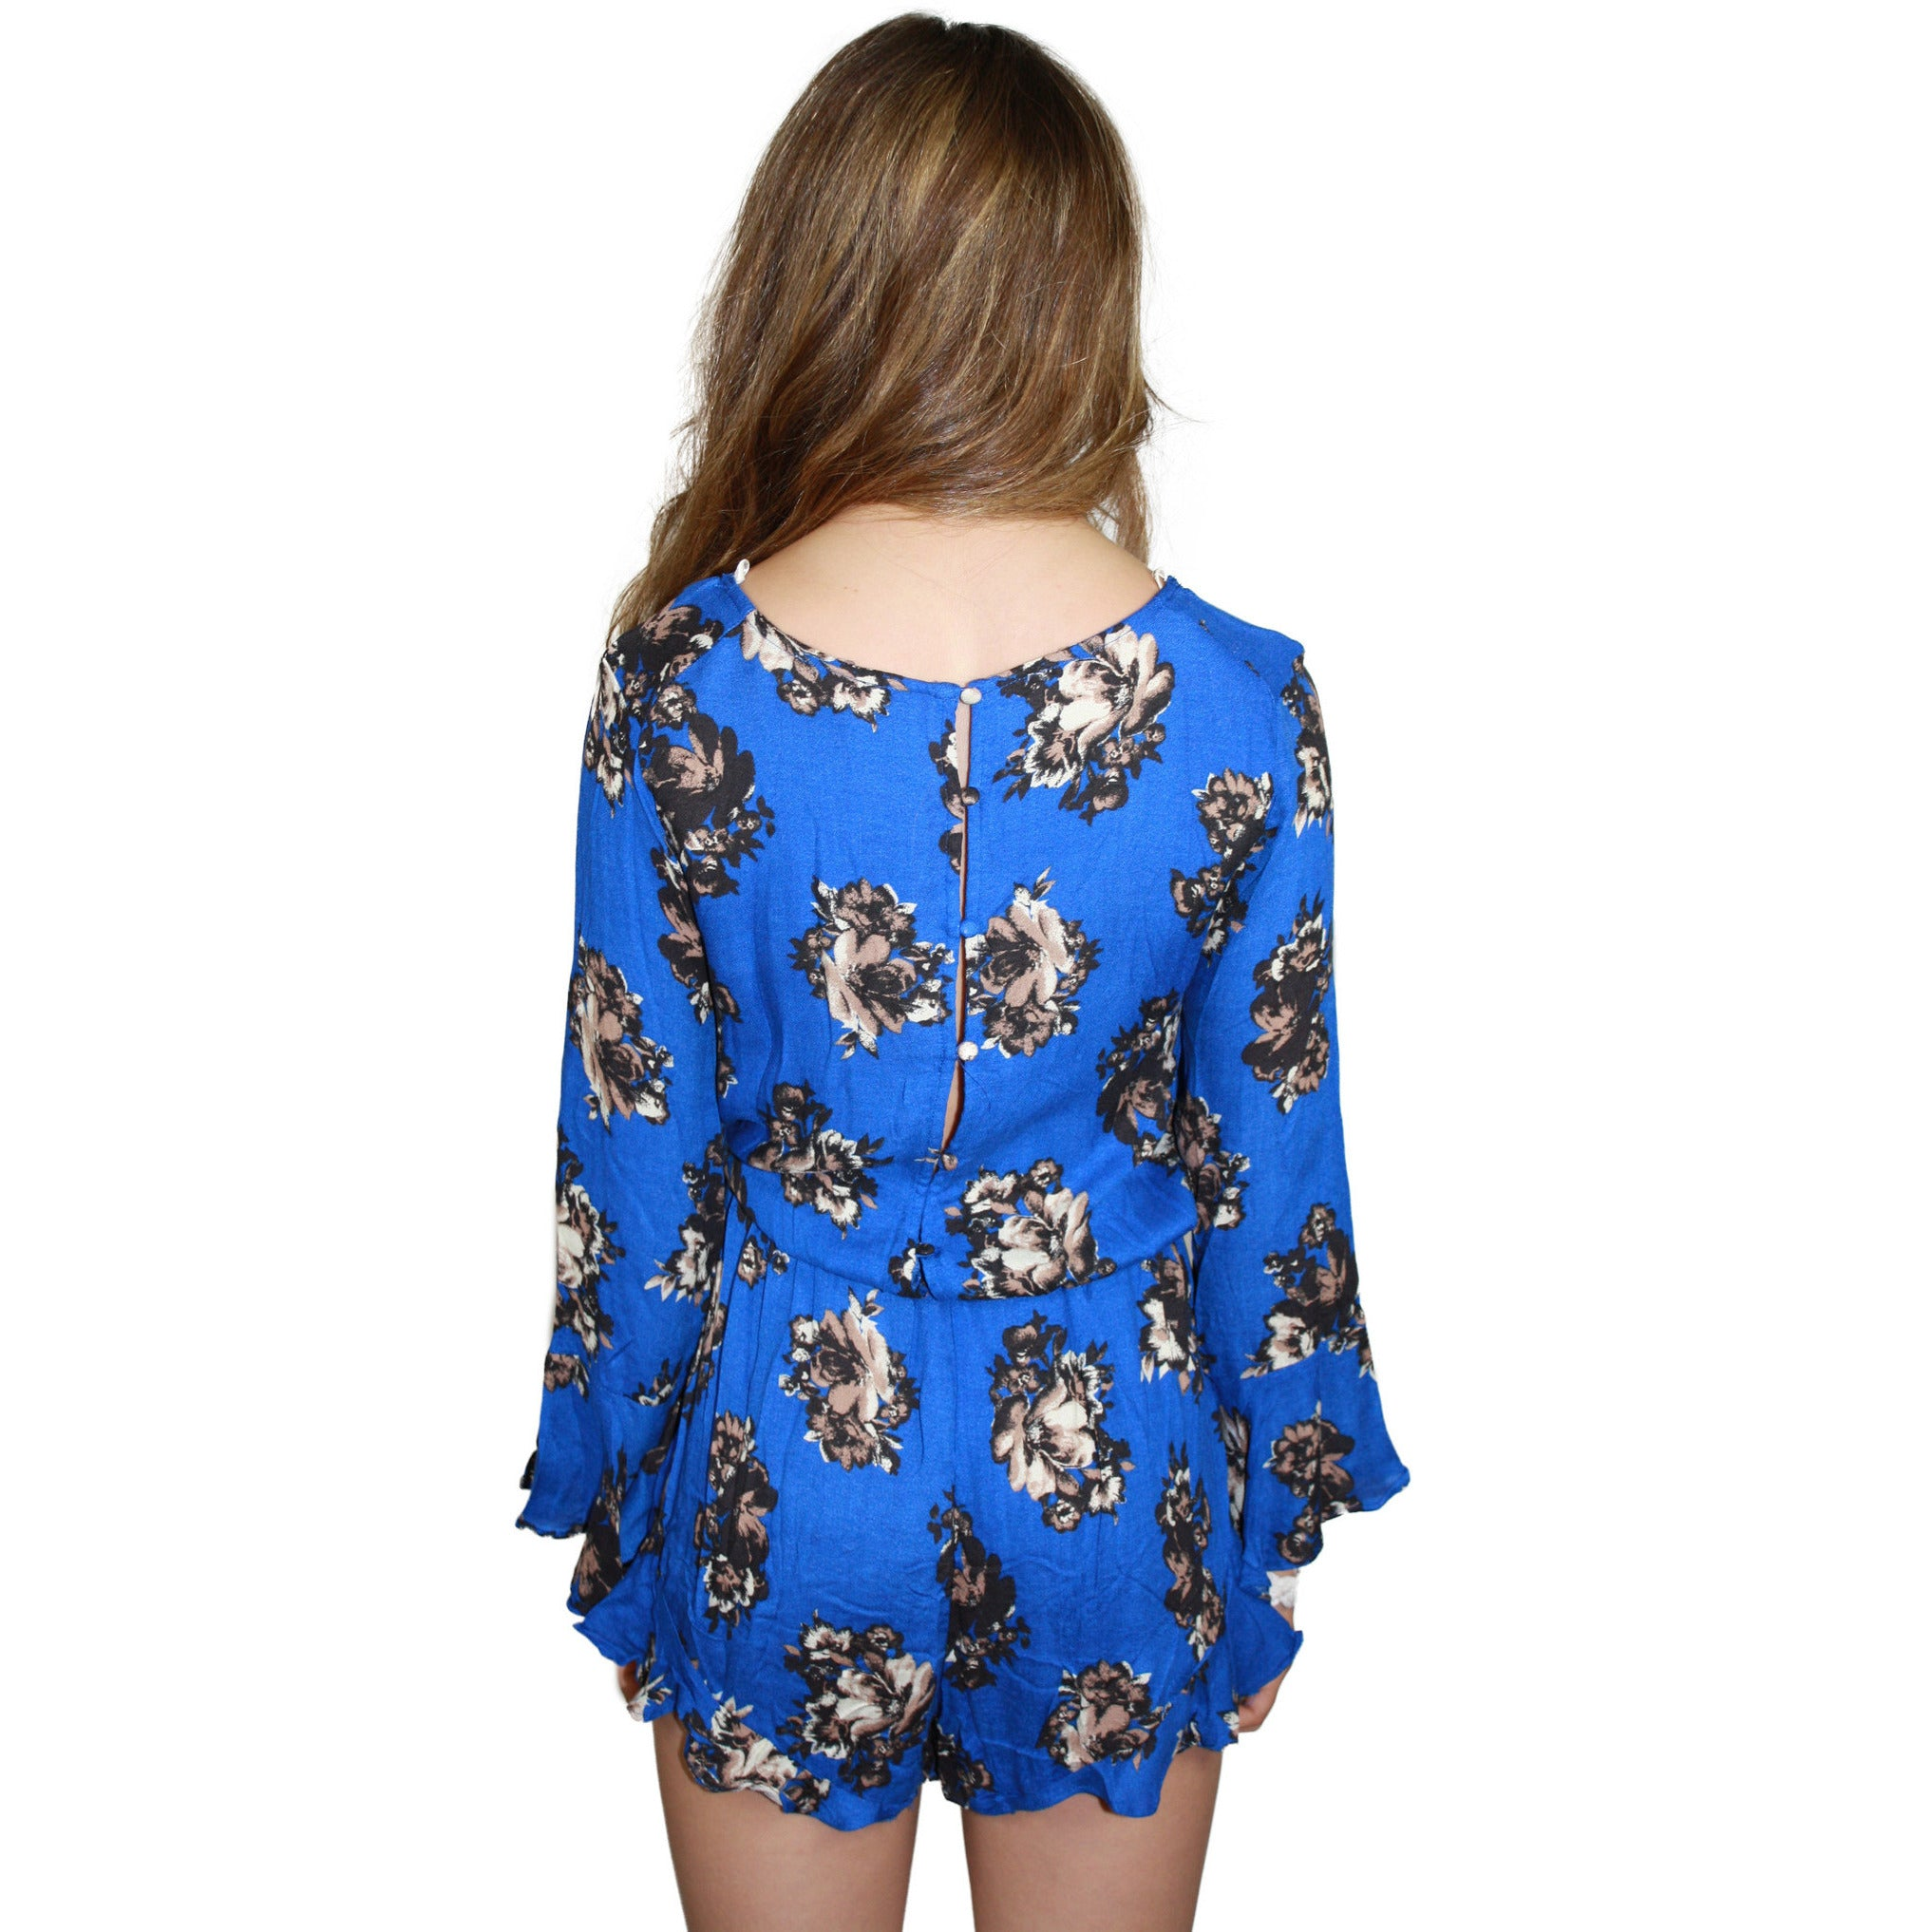 Sepia Floral Romper in Royal Blue